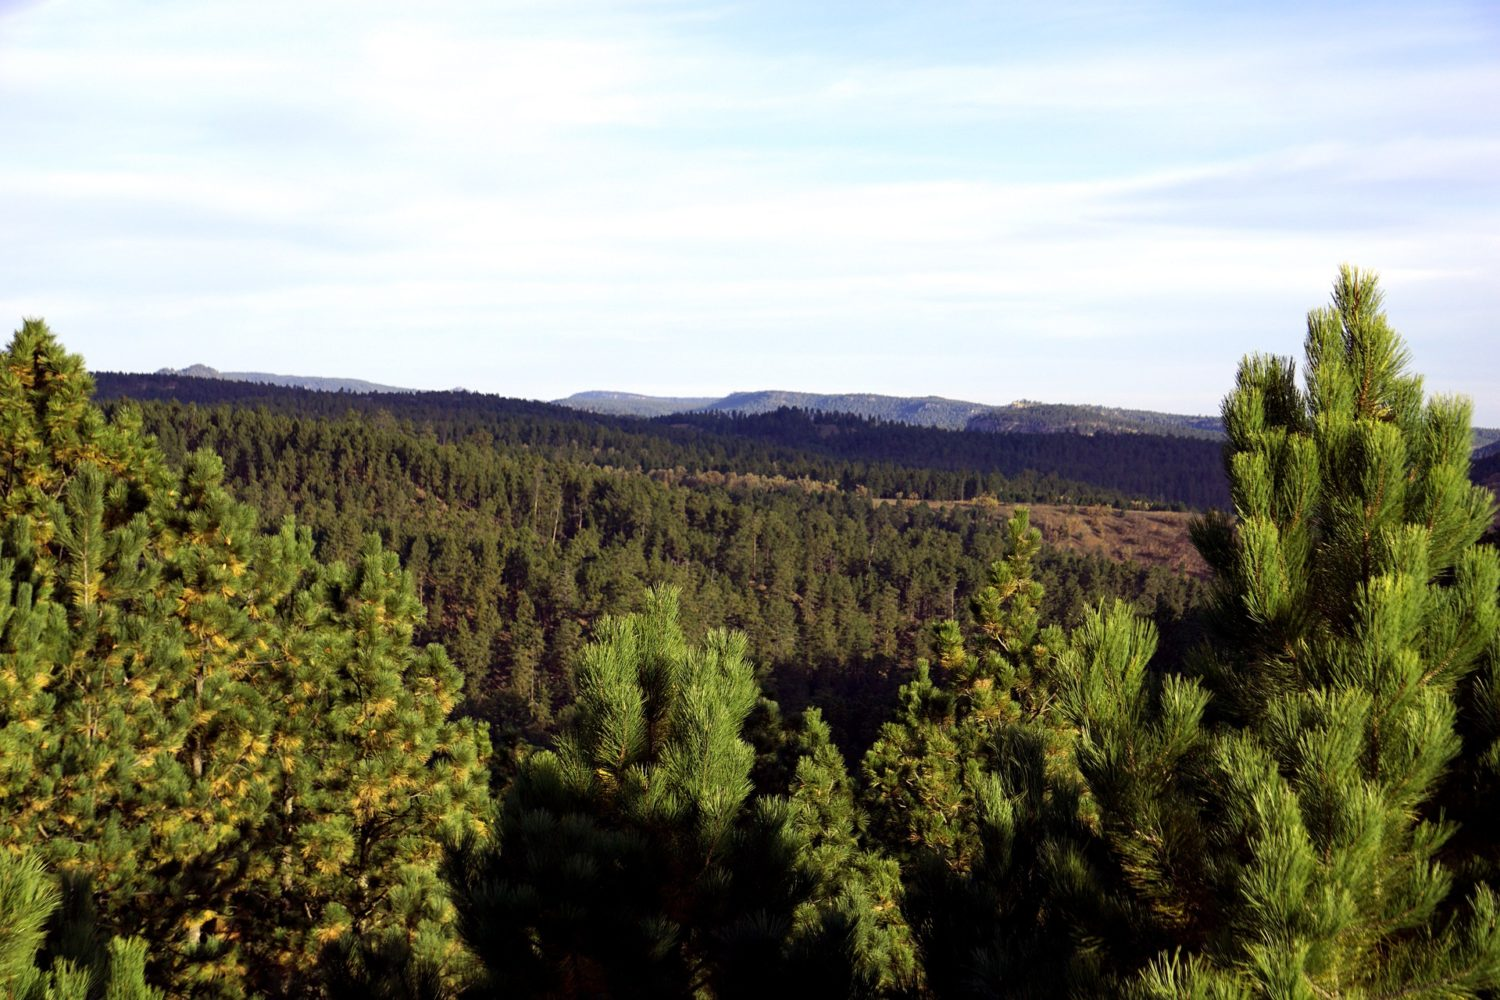 The Black Hills with endless forest views